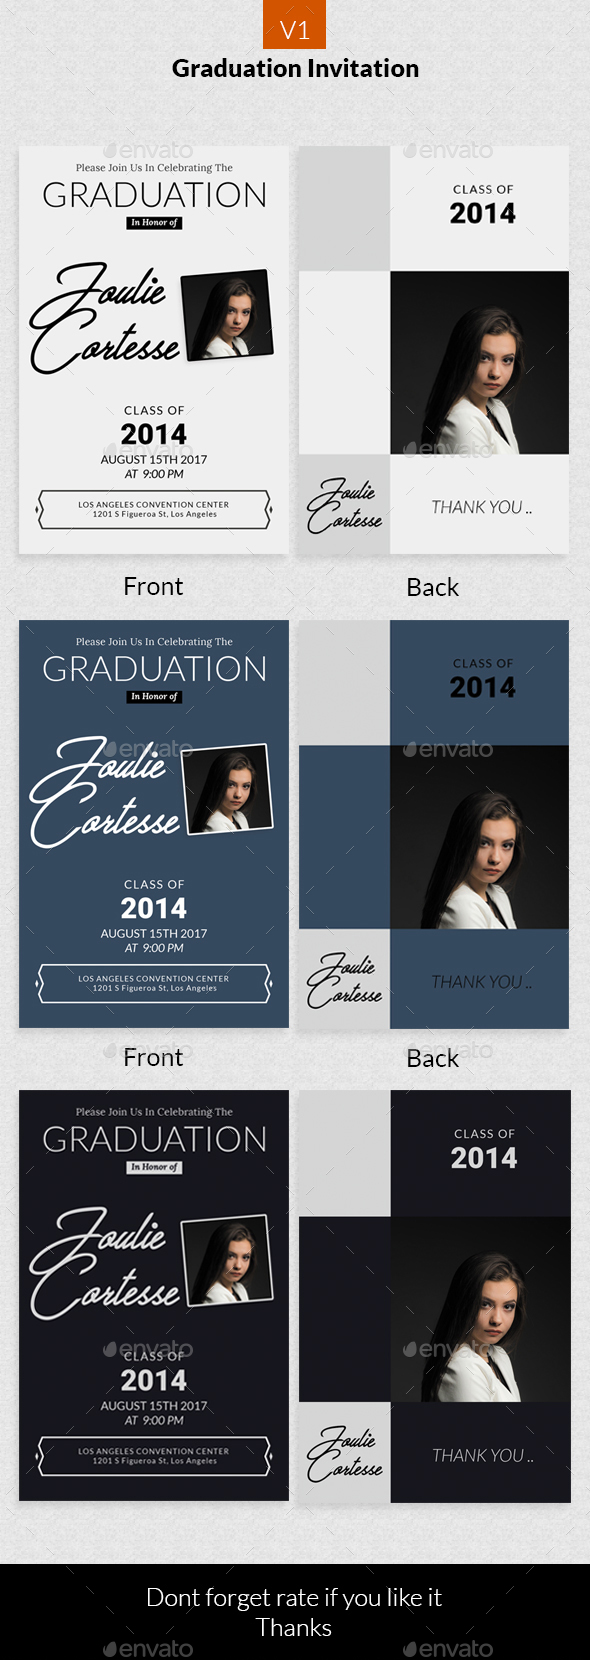 Graduation Invitation v1 - Invitations Cards & Invites